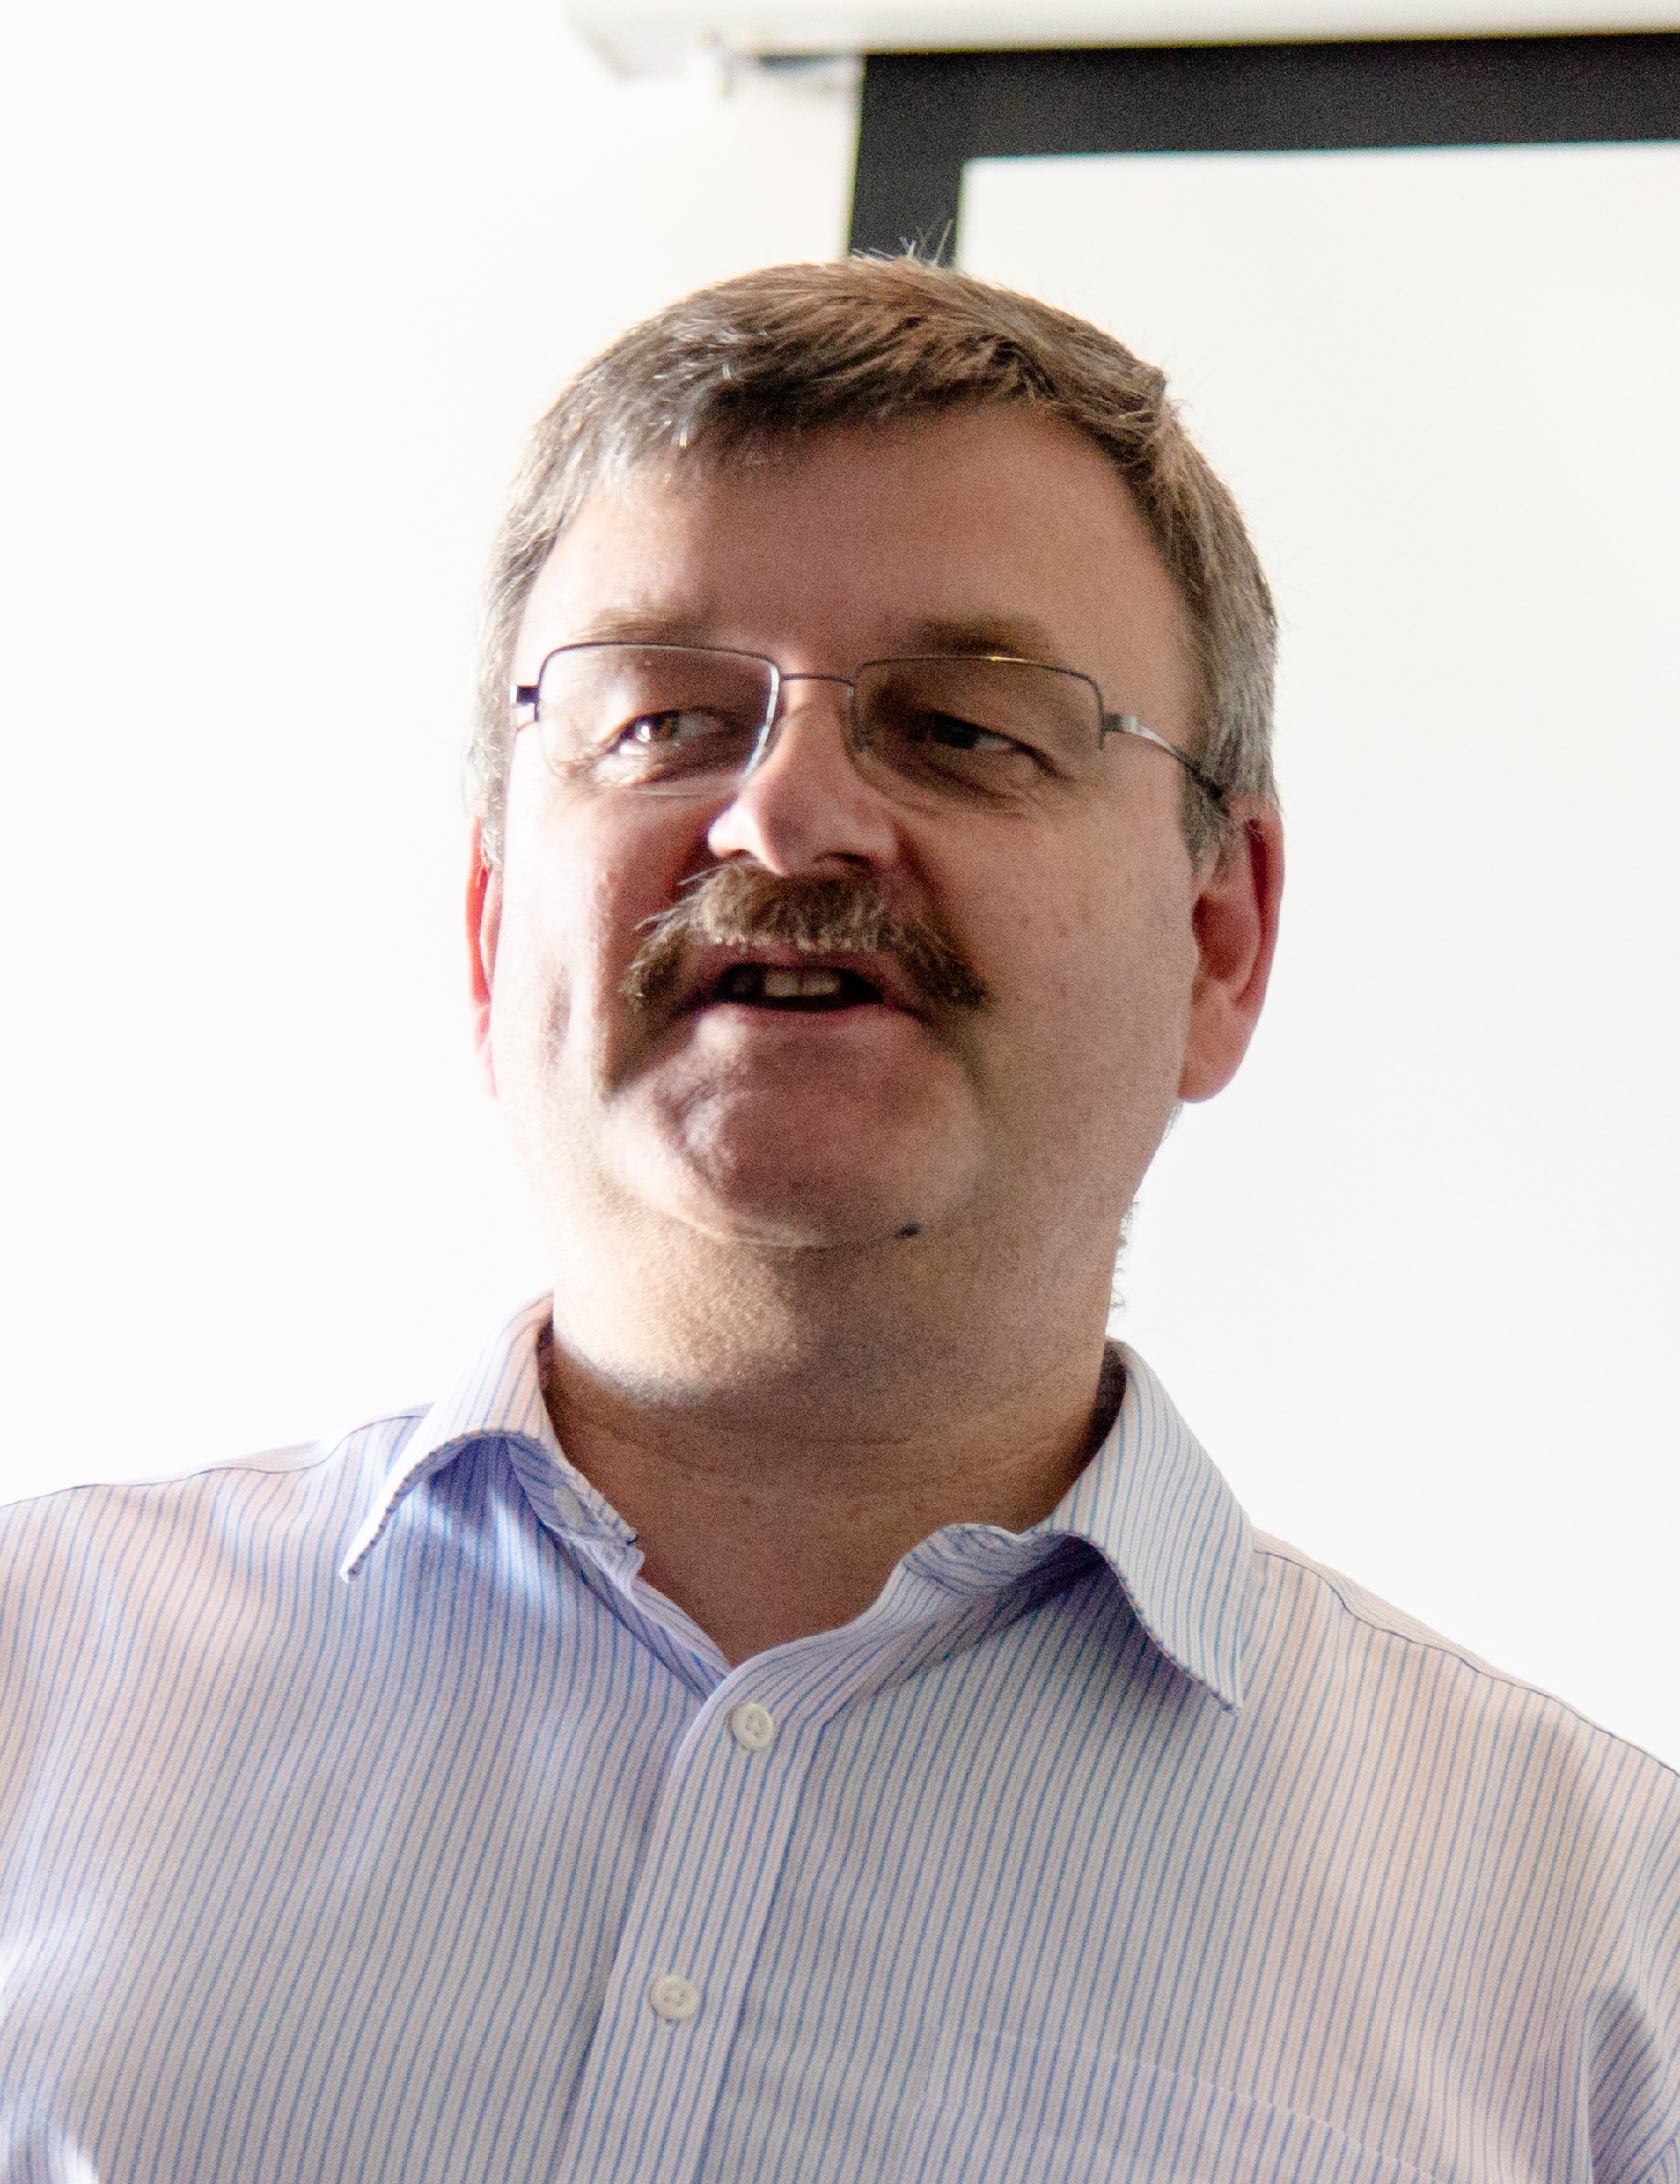 David Thomas Portrait HPC